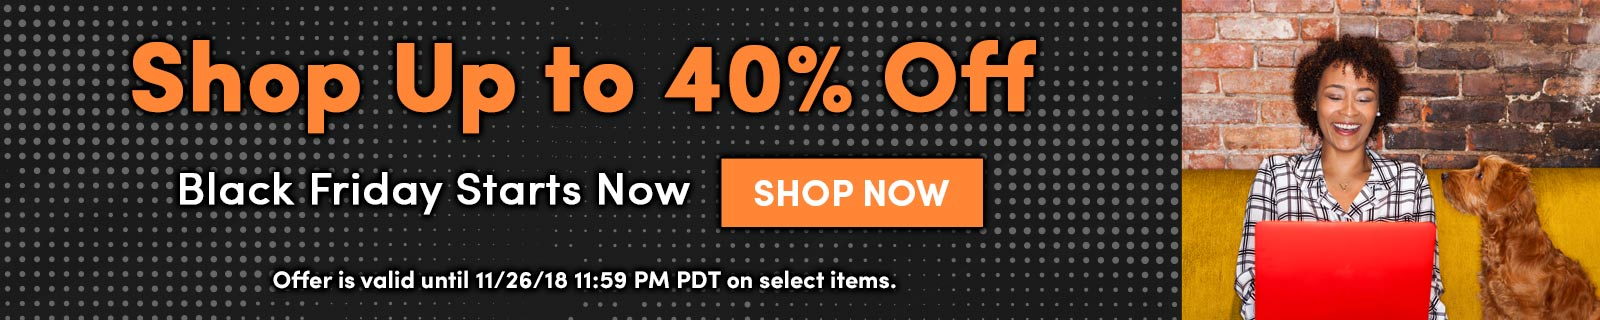 Shop Up to 40% Off Black Friday Starts Now SHOP NOW